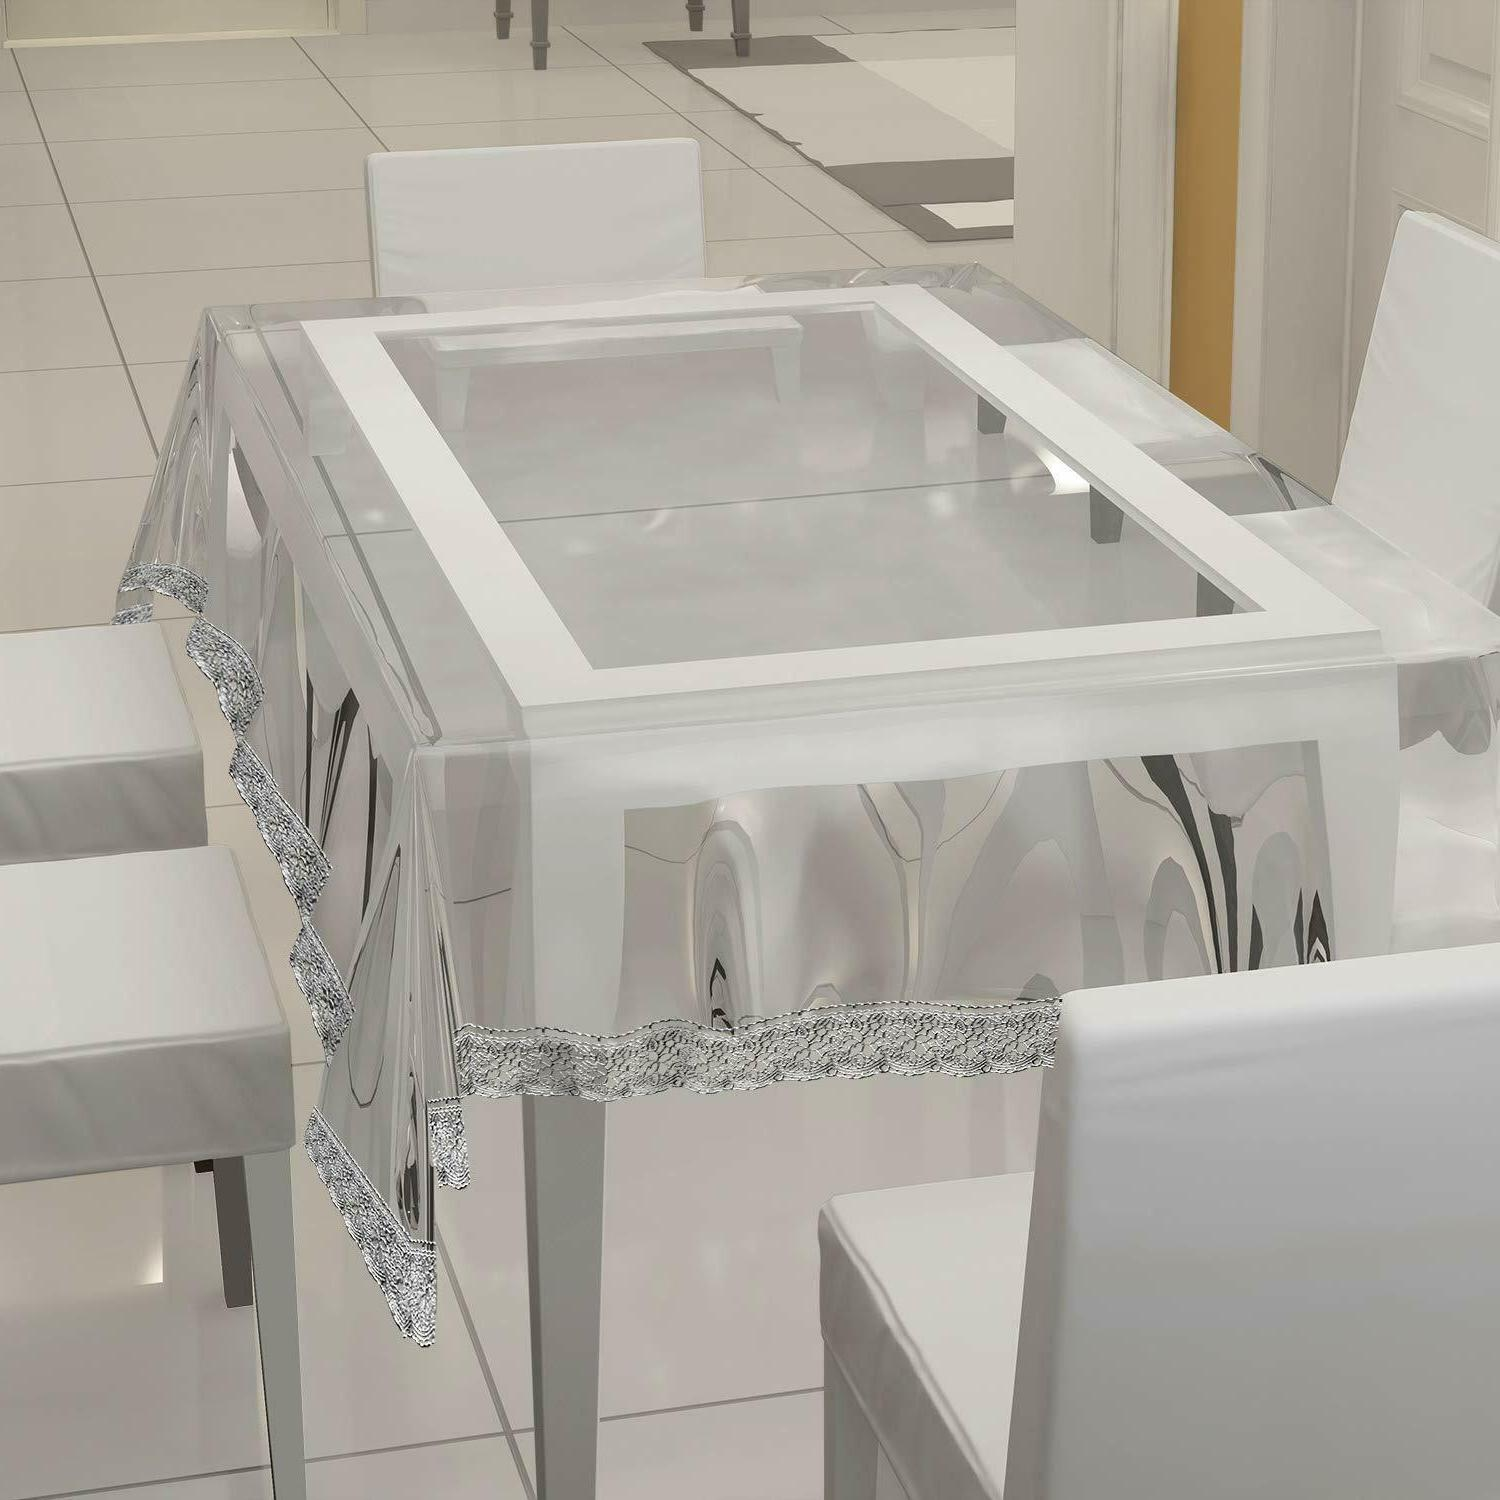 transparent waterproof table cover 2 to 4